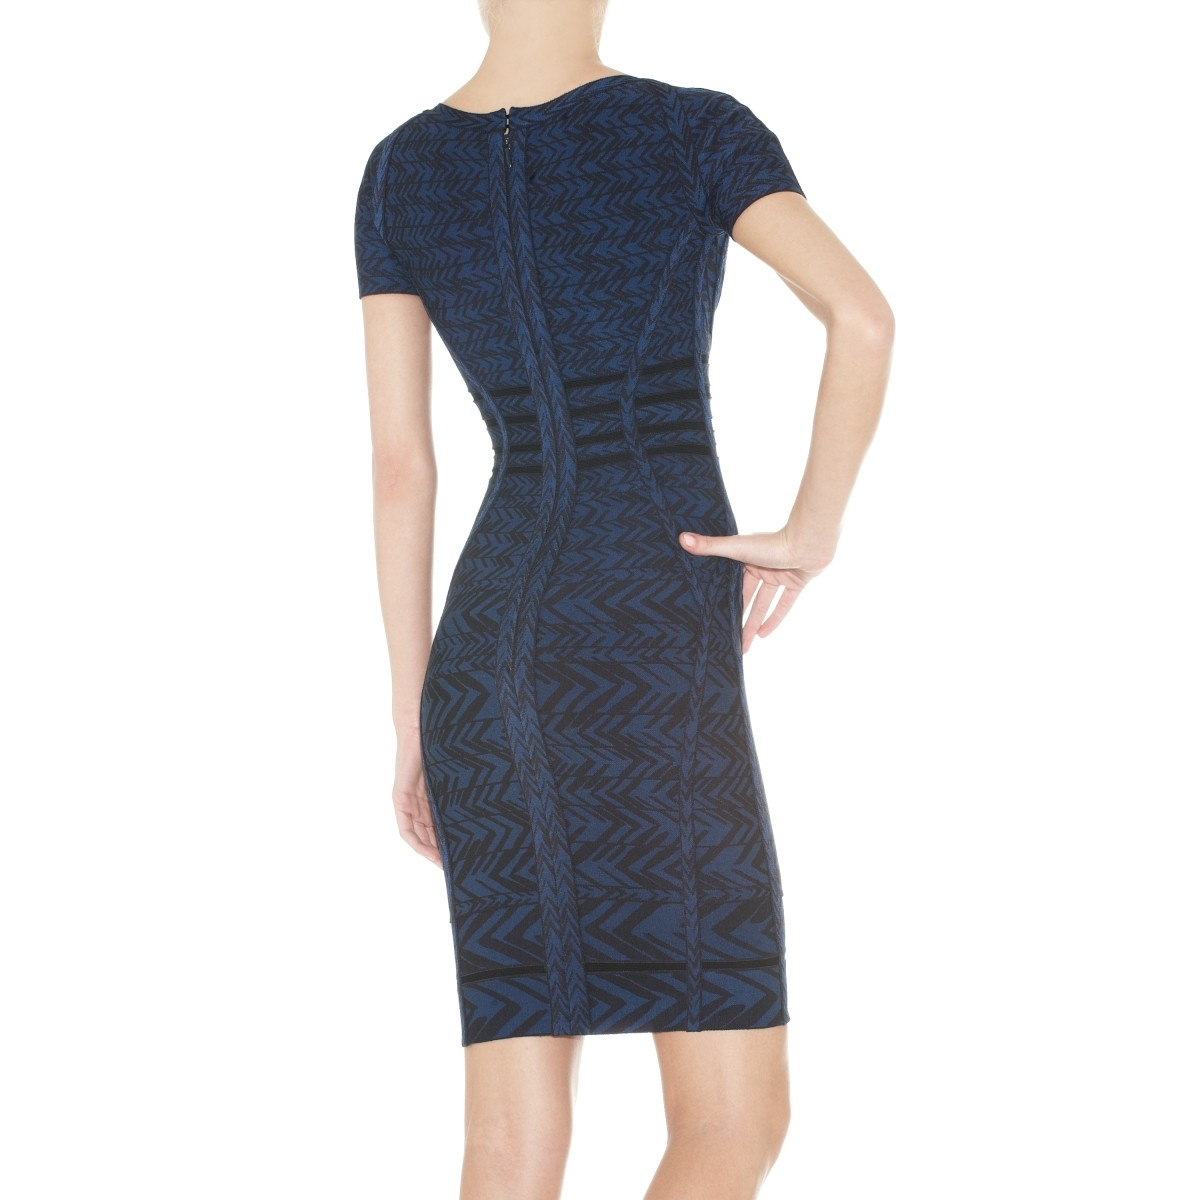 Herve Leger Fia Jacquard Bandage Dress